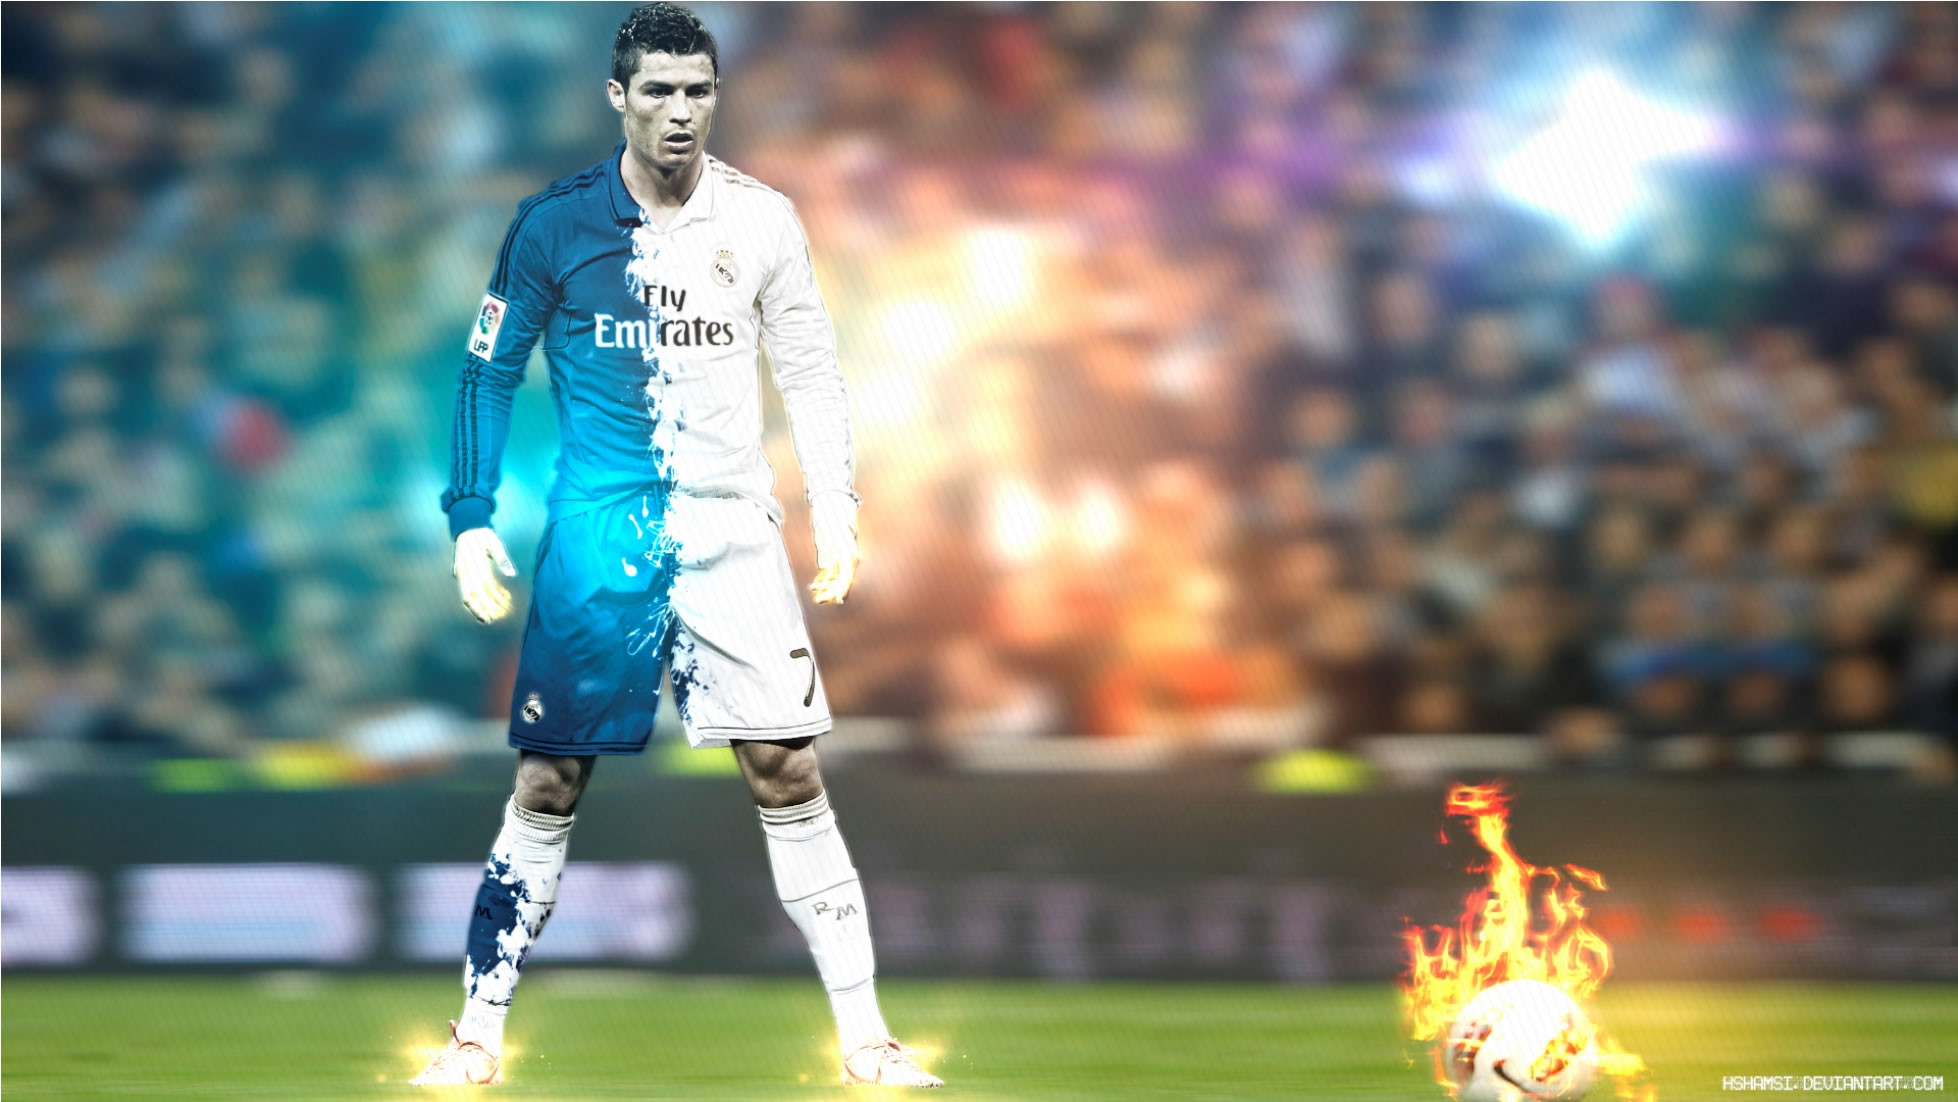 Cristiano Ronaldo Wallpapers 71 Images